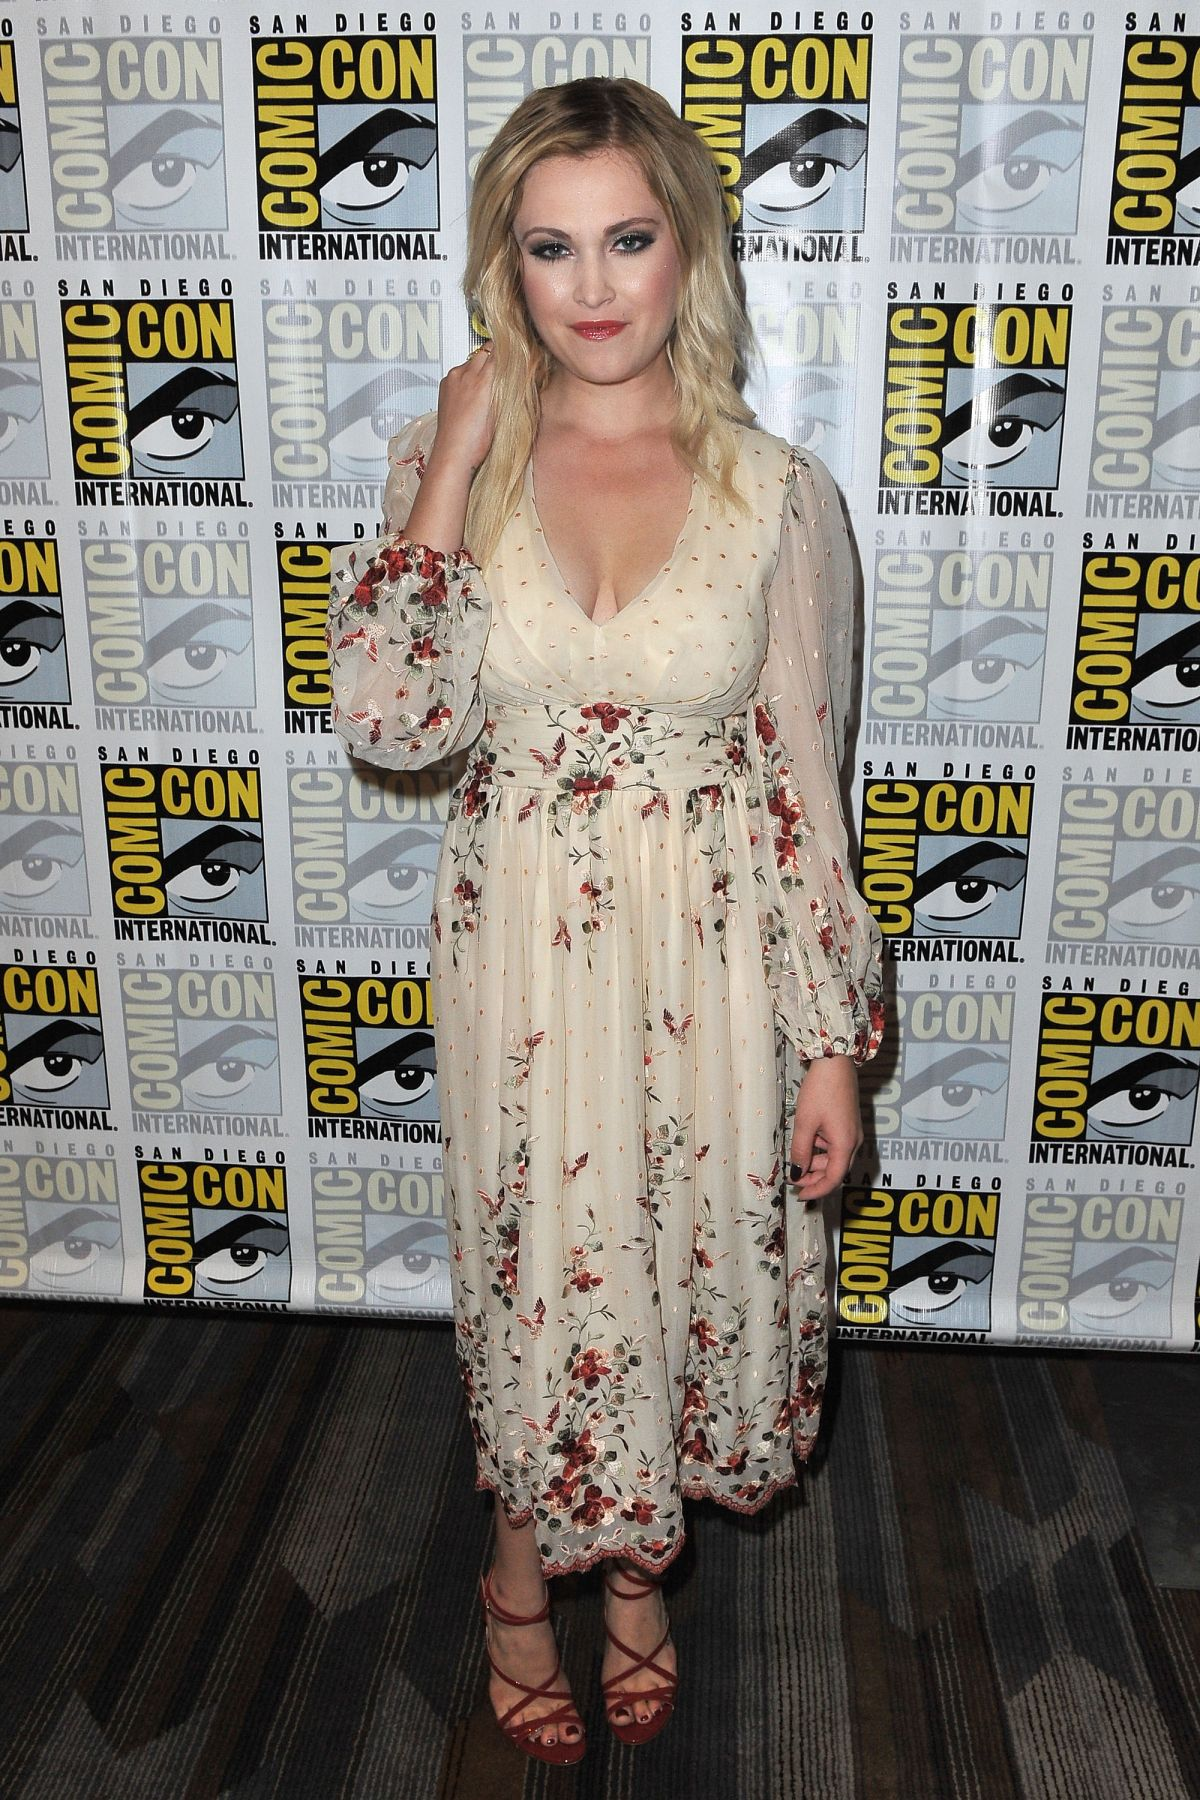 http://www.hawtcelebs.com/wp-content/uploads/2016/07/eliza-taylor-at-the-100-press-line-at-comic-con-in-san-diego-07-22-2016_12.jpg